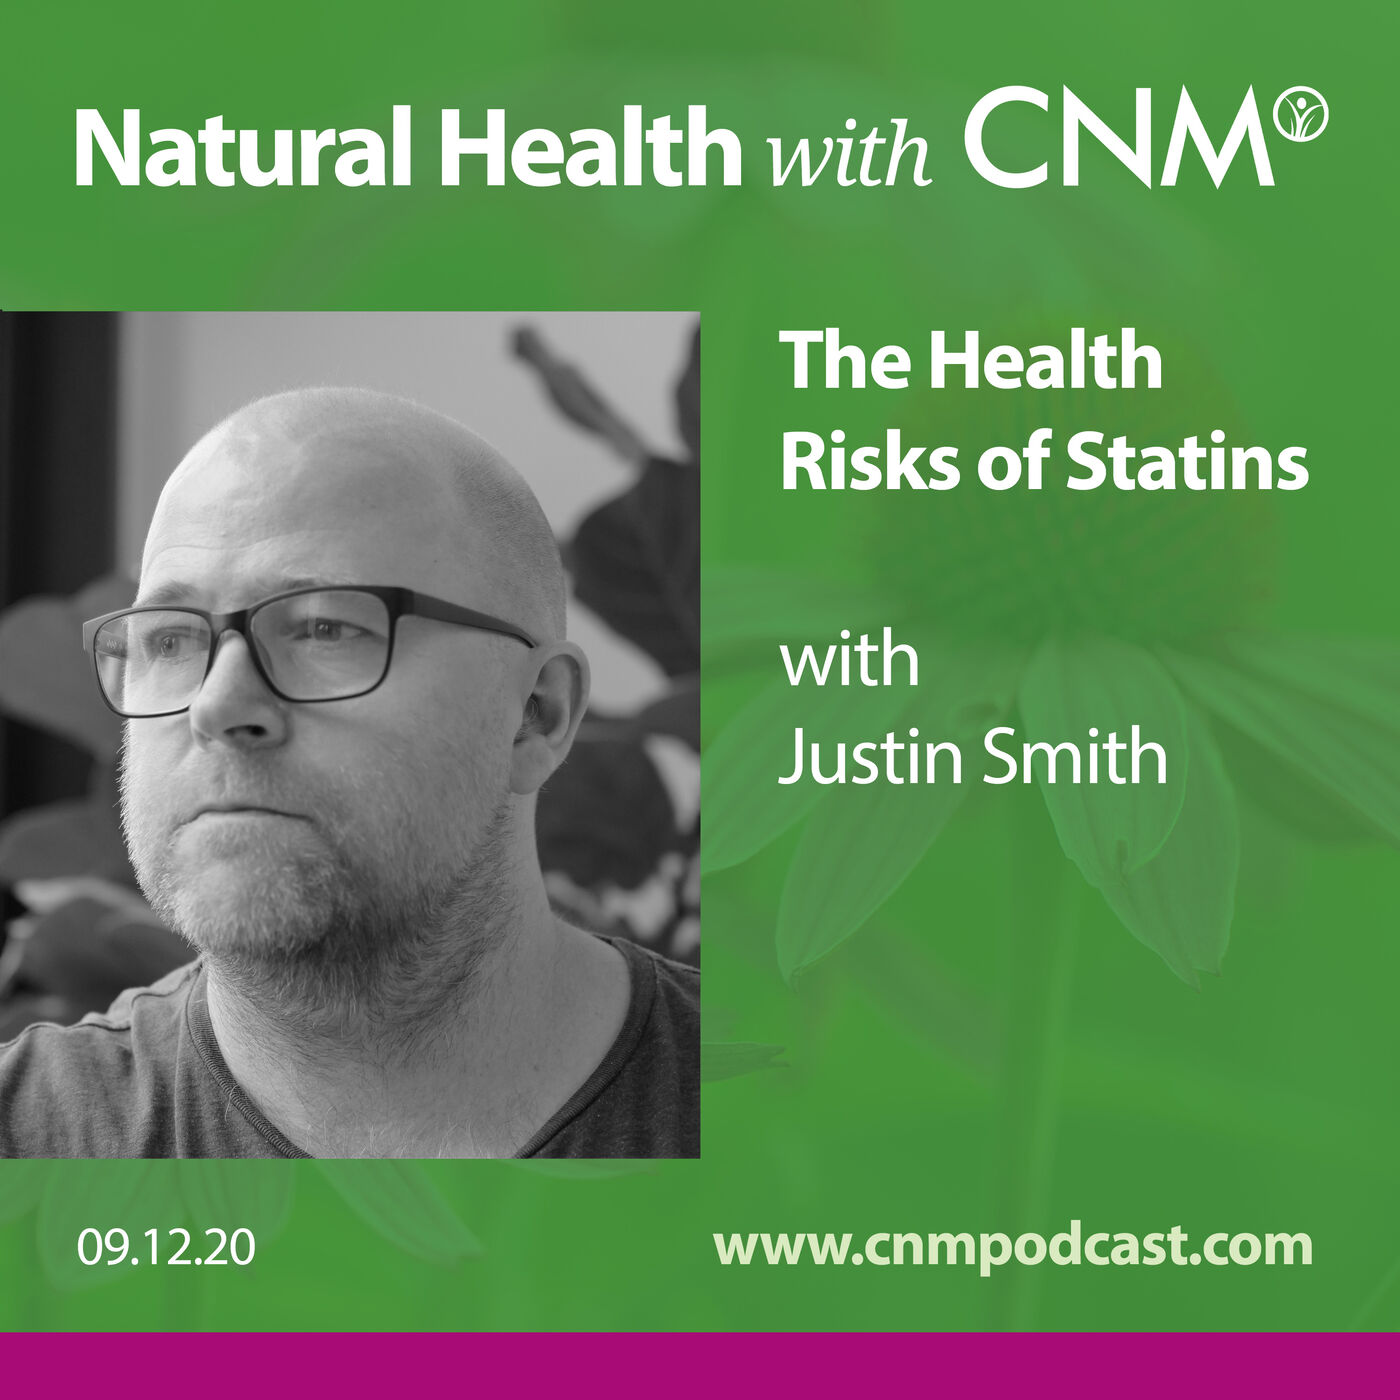 The Health Risks of Statins with Justin Smith